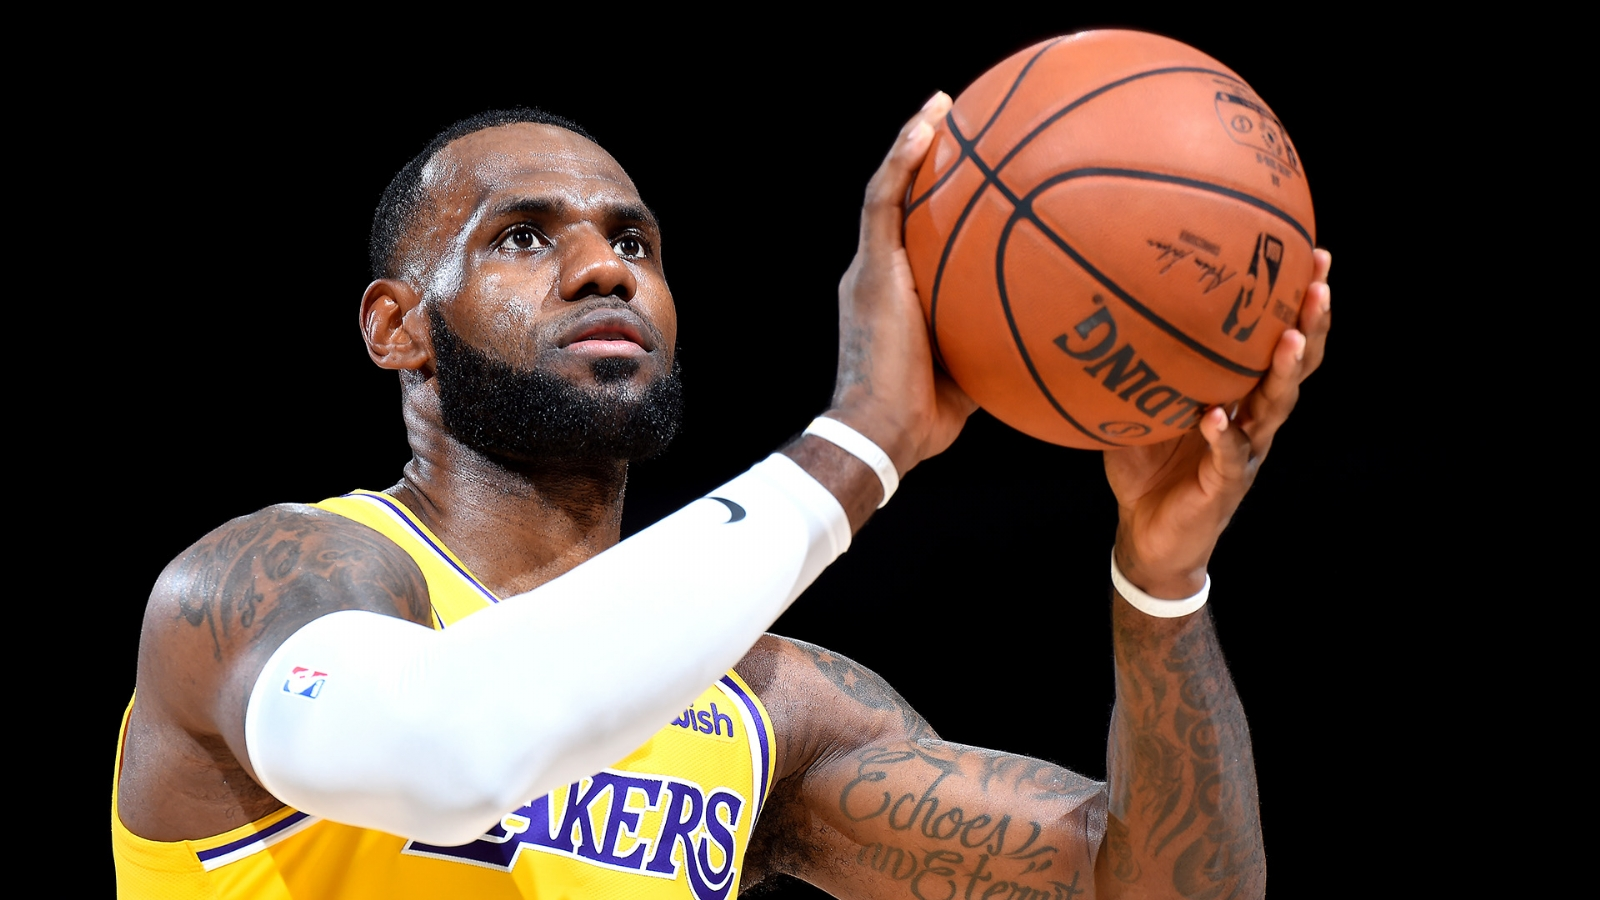 LeBron James debuta en casa de los Lakers con mágica volcada — YouTube